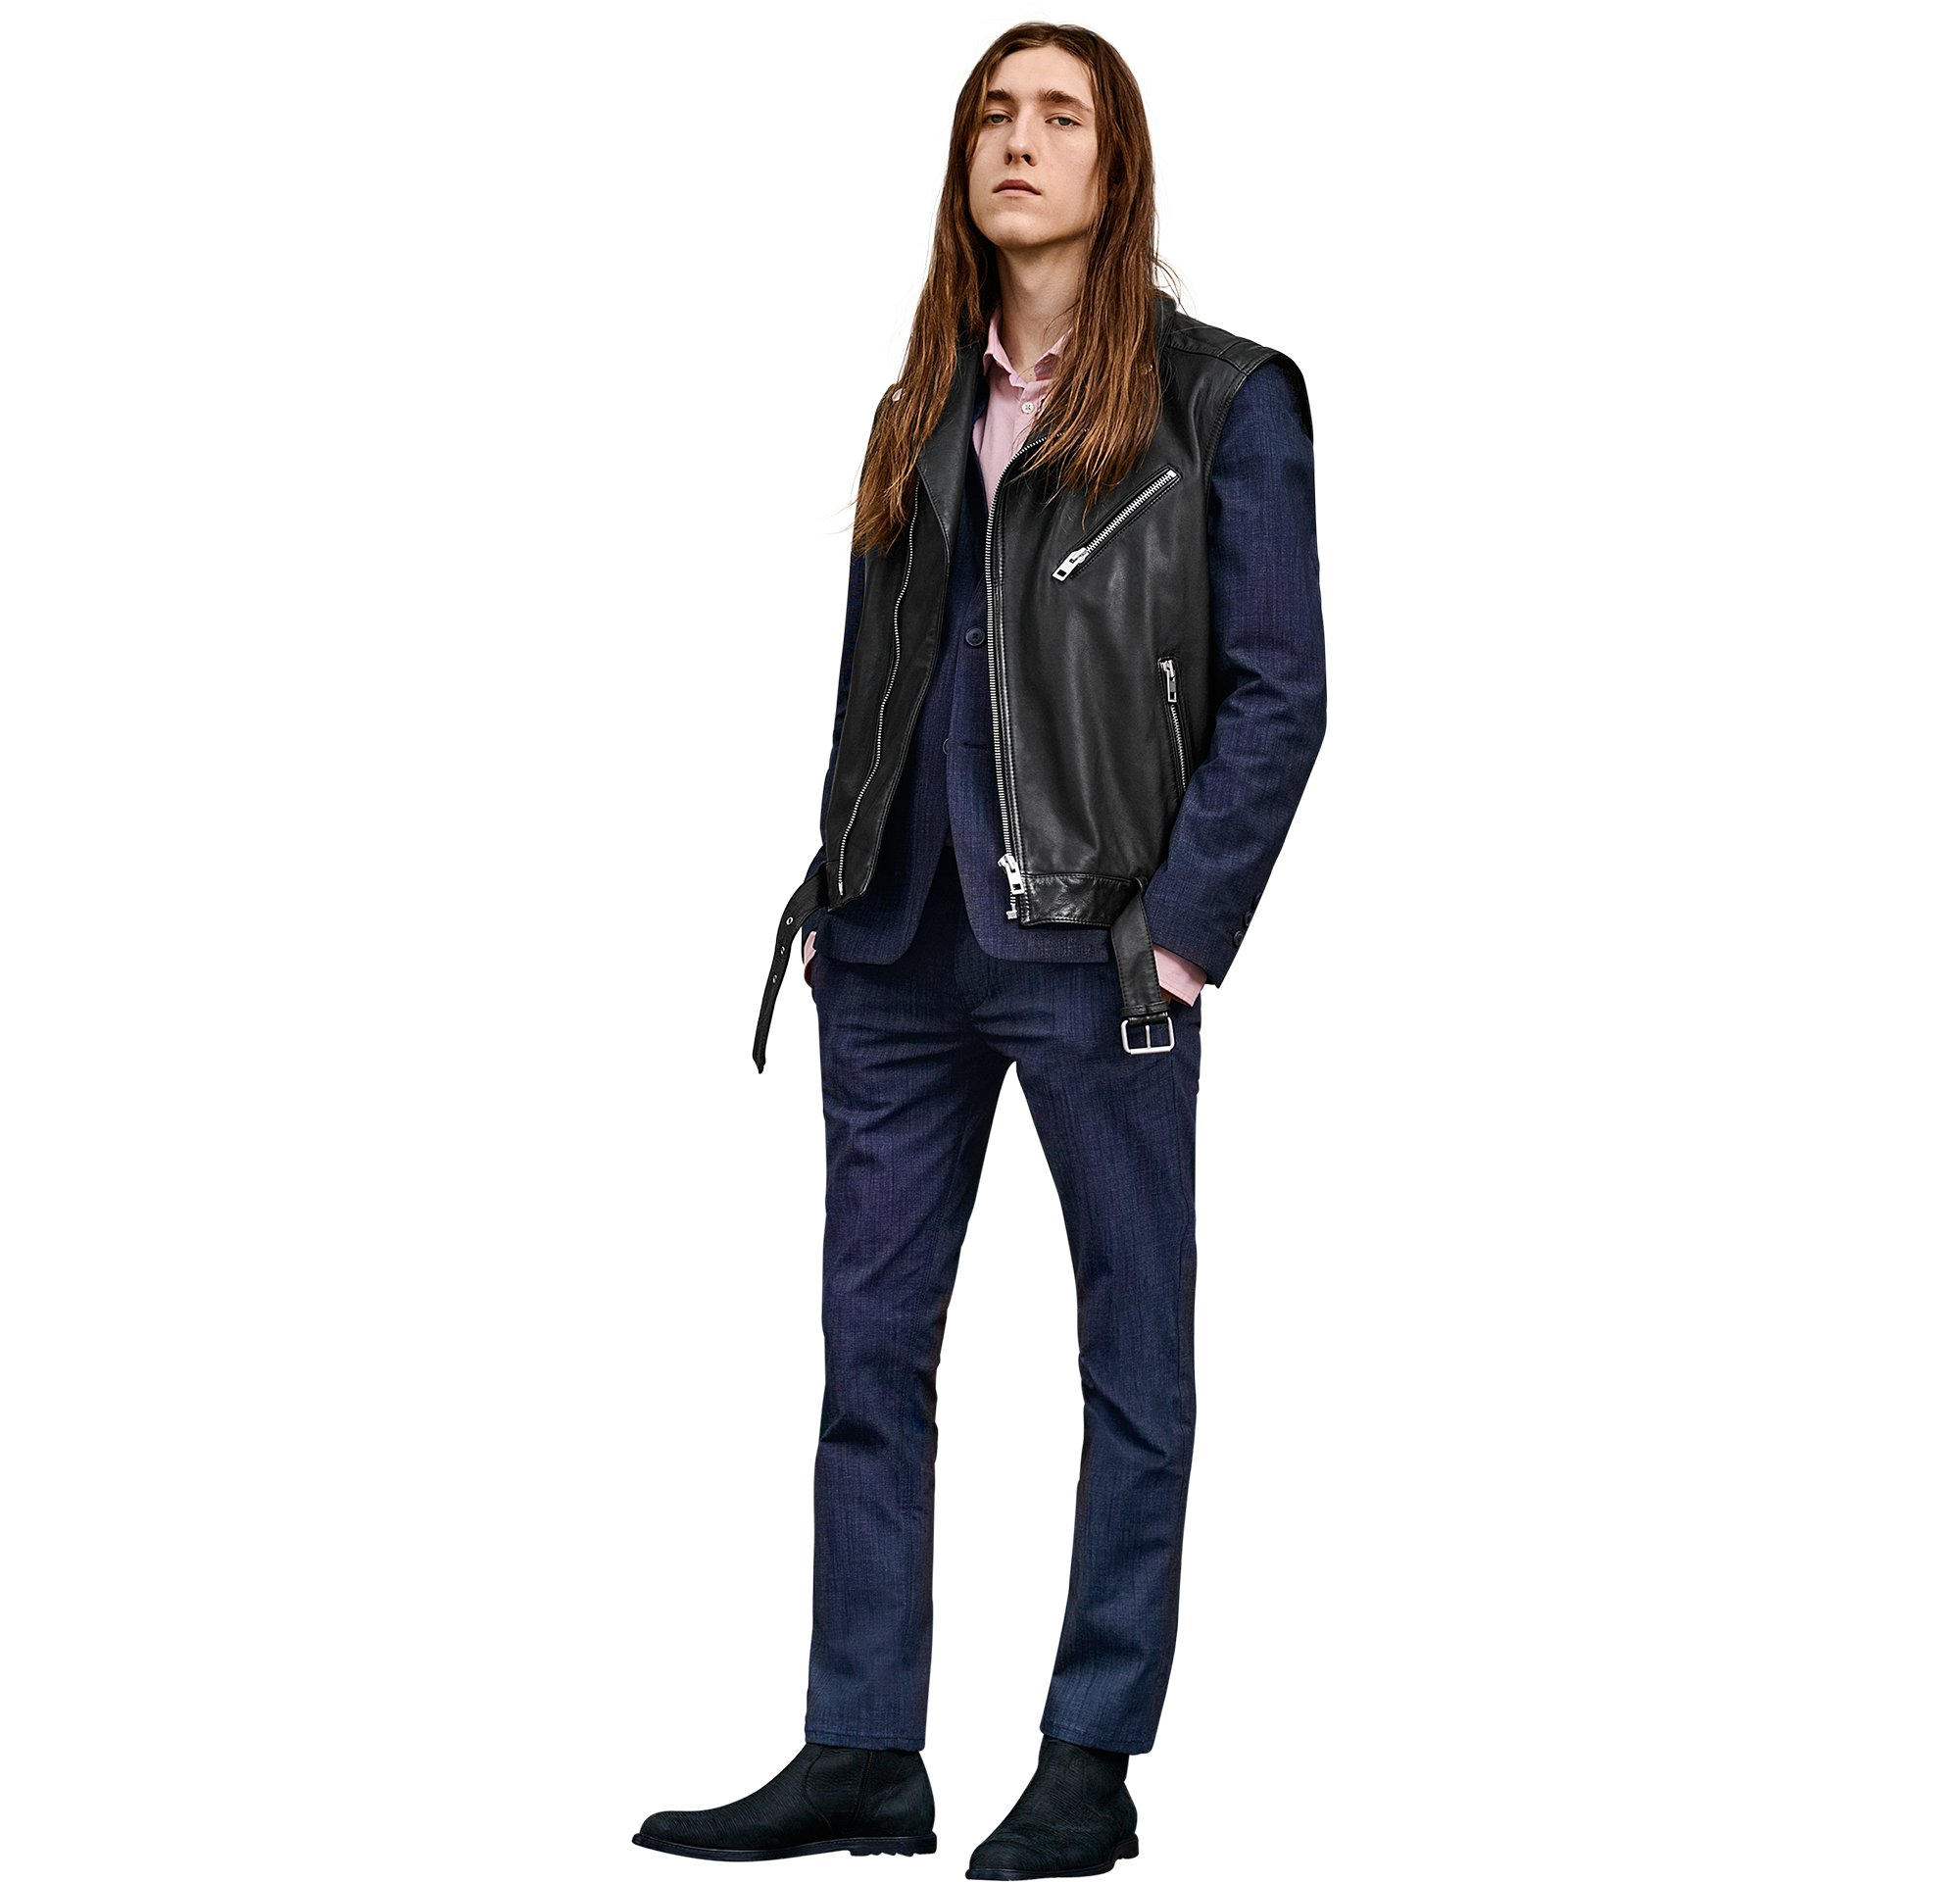 Black leather jacket over blue jacket with blue trousers and black shoes by BOSS Orange